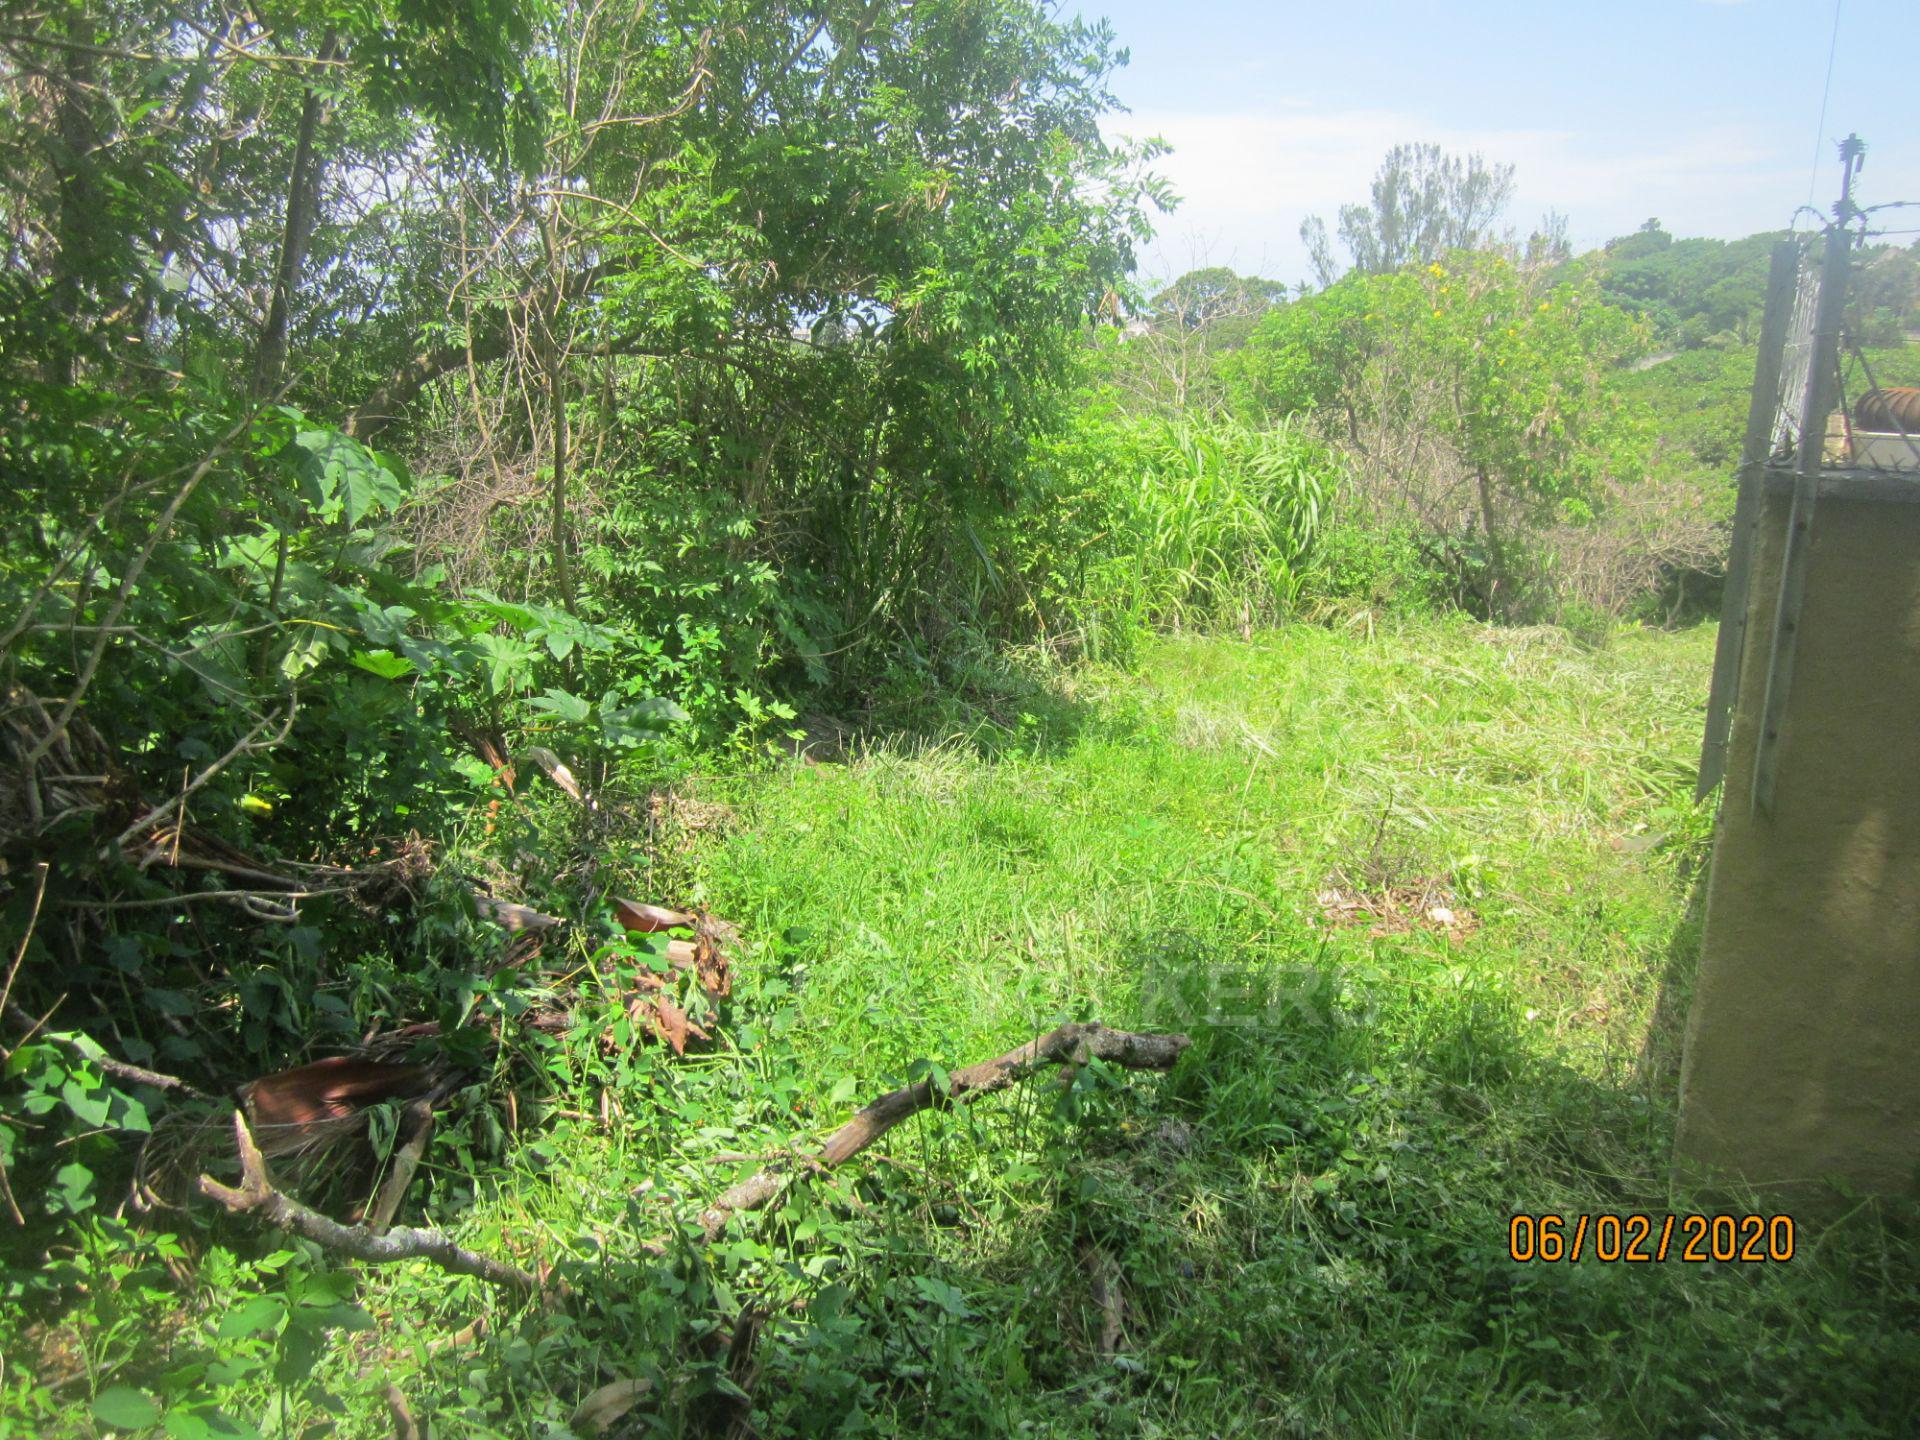 Land in Uvongo - 024 Second plot and adjacent complex wall.JPG